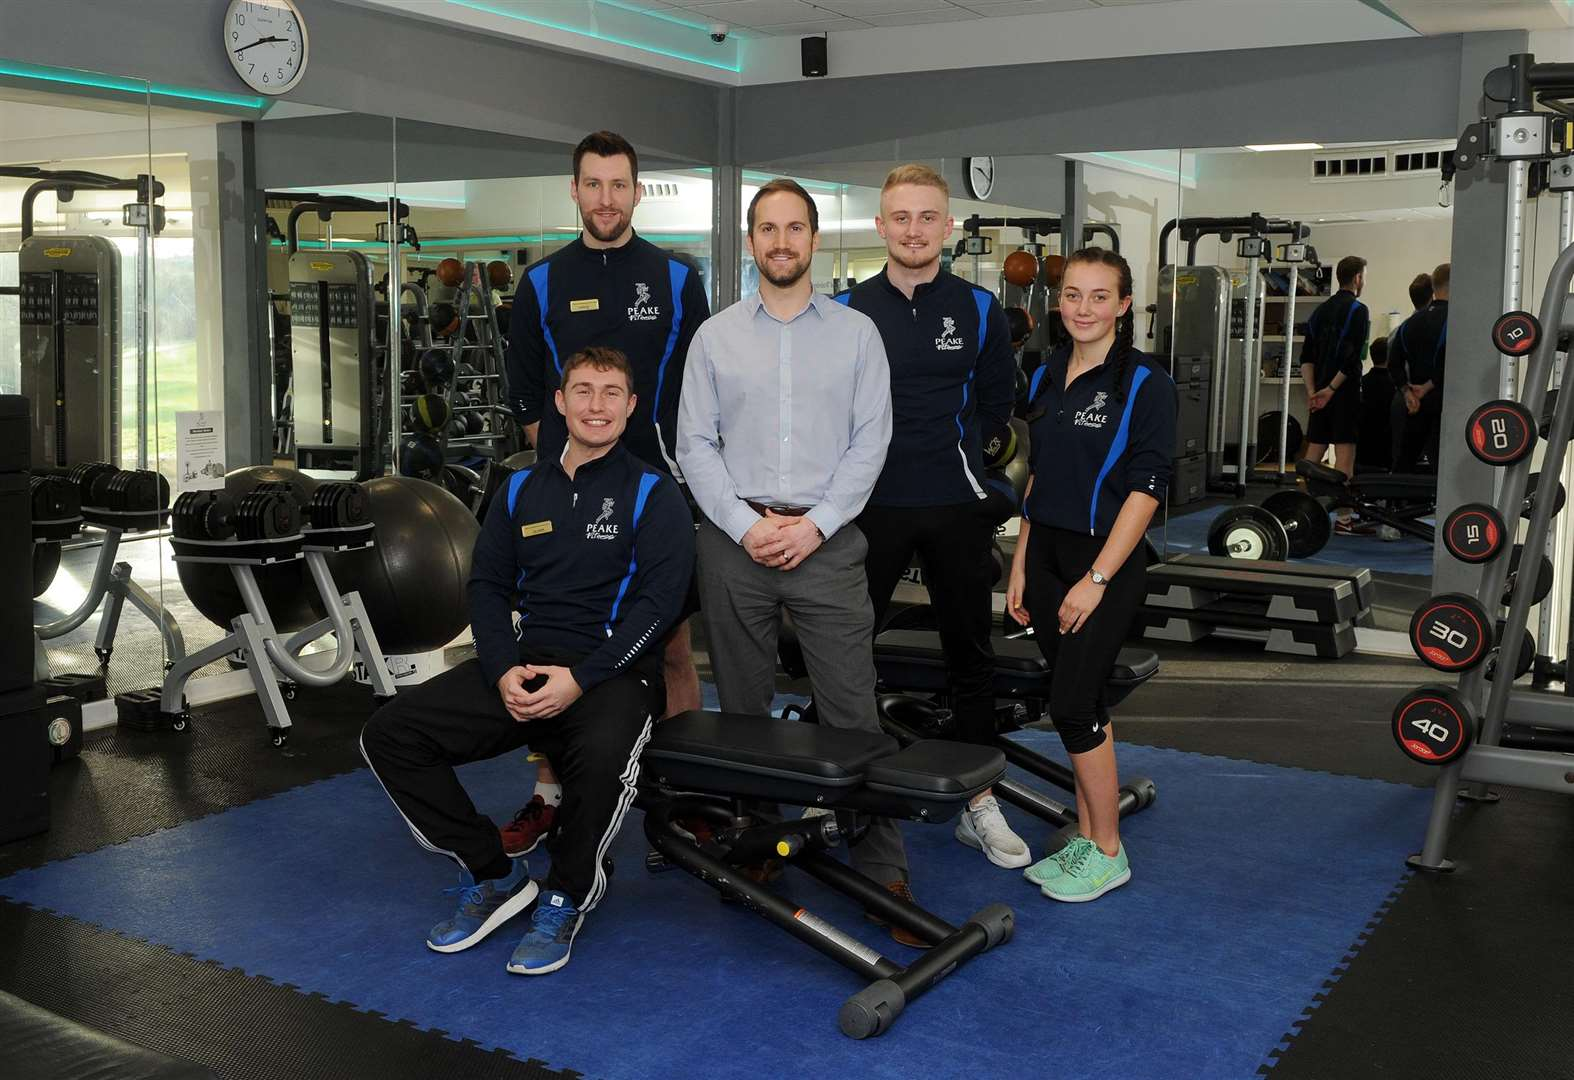 Leavenheath gym to promote importance of healthy heart at charity open event